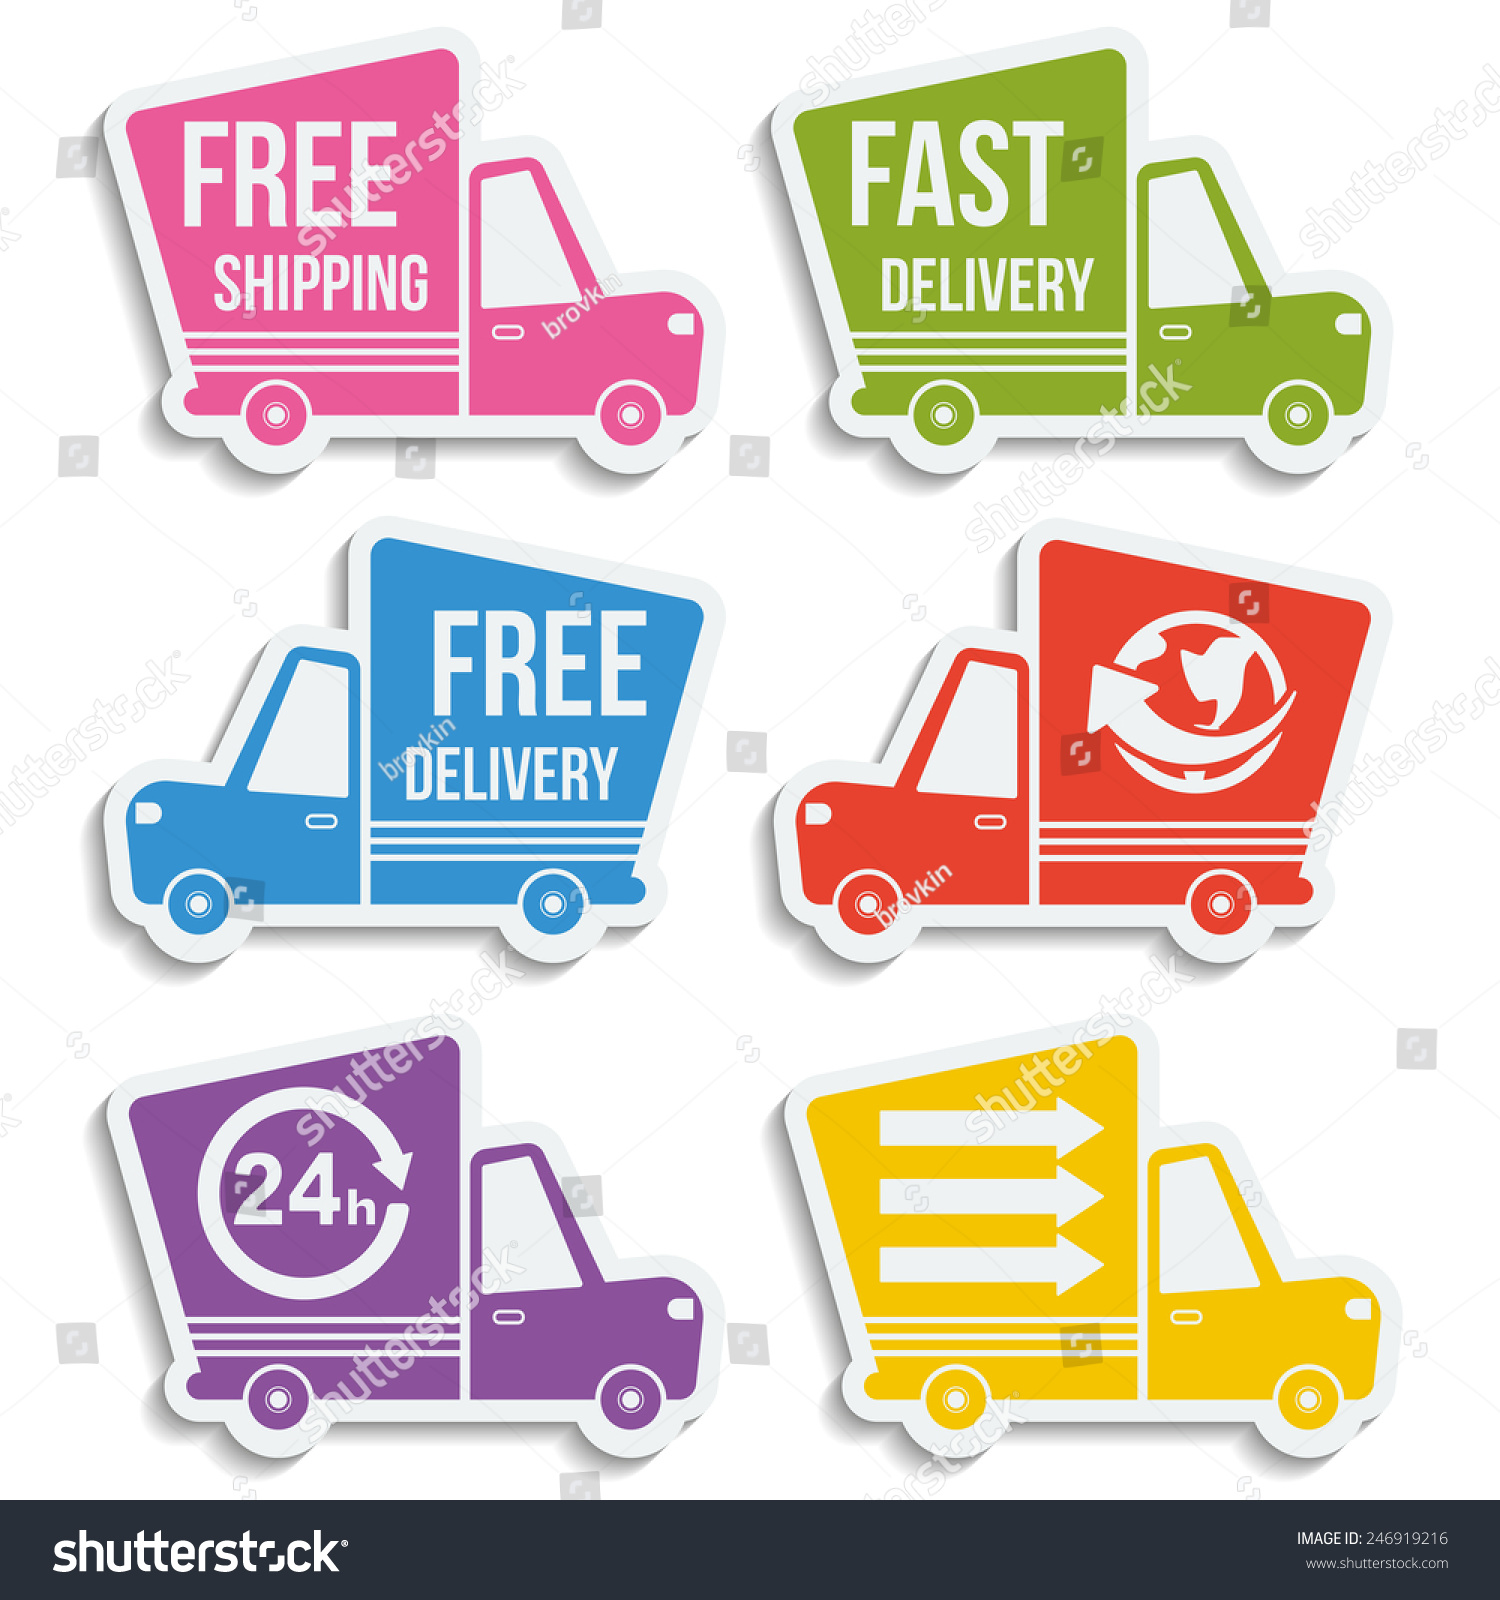 Free Delivery Fast Delivery Free Shipping Stock Vector ...